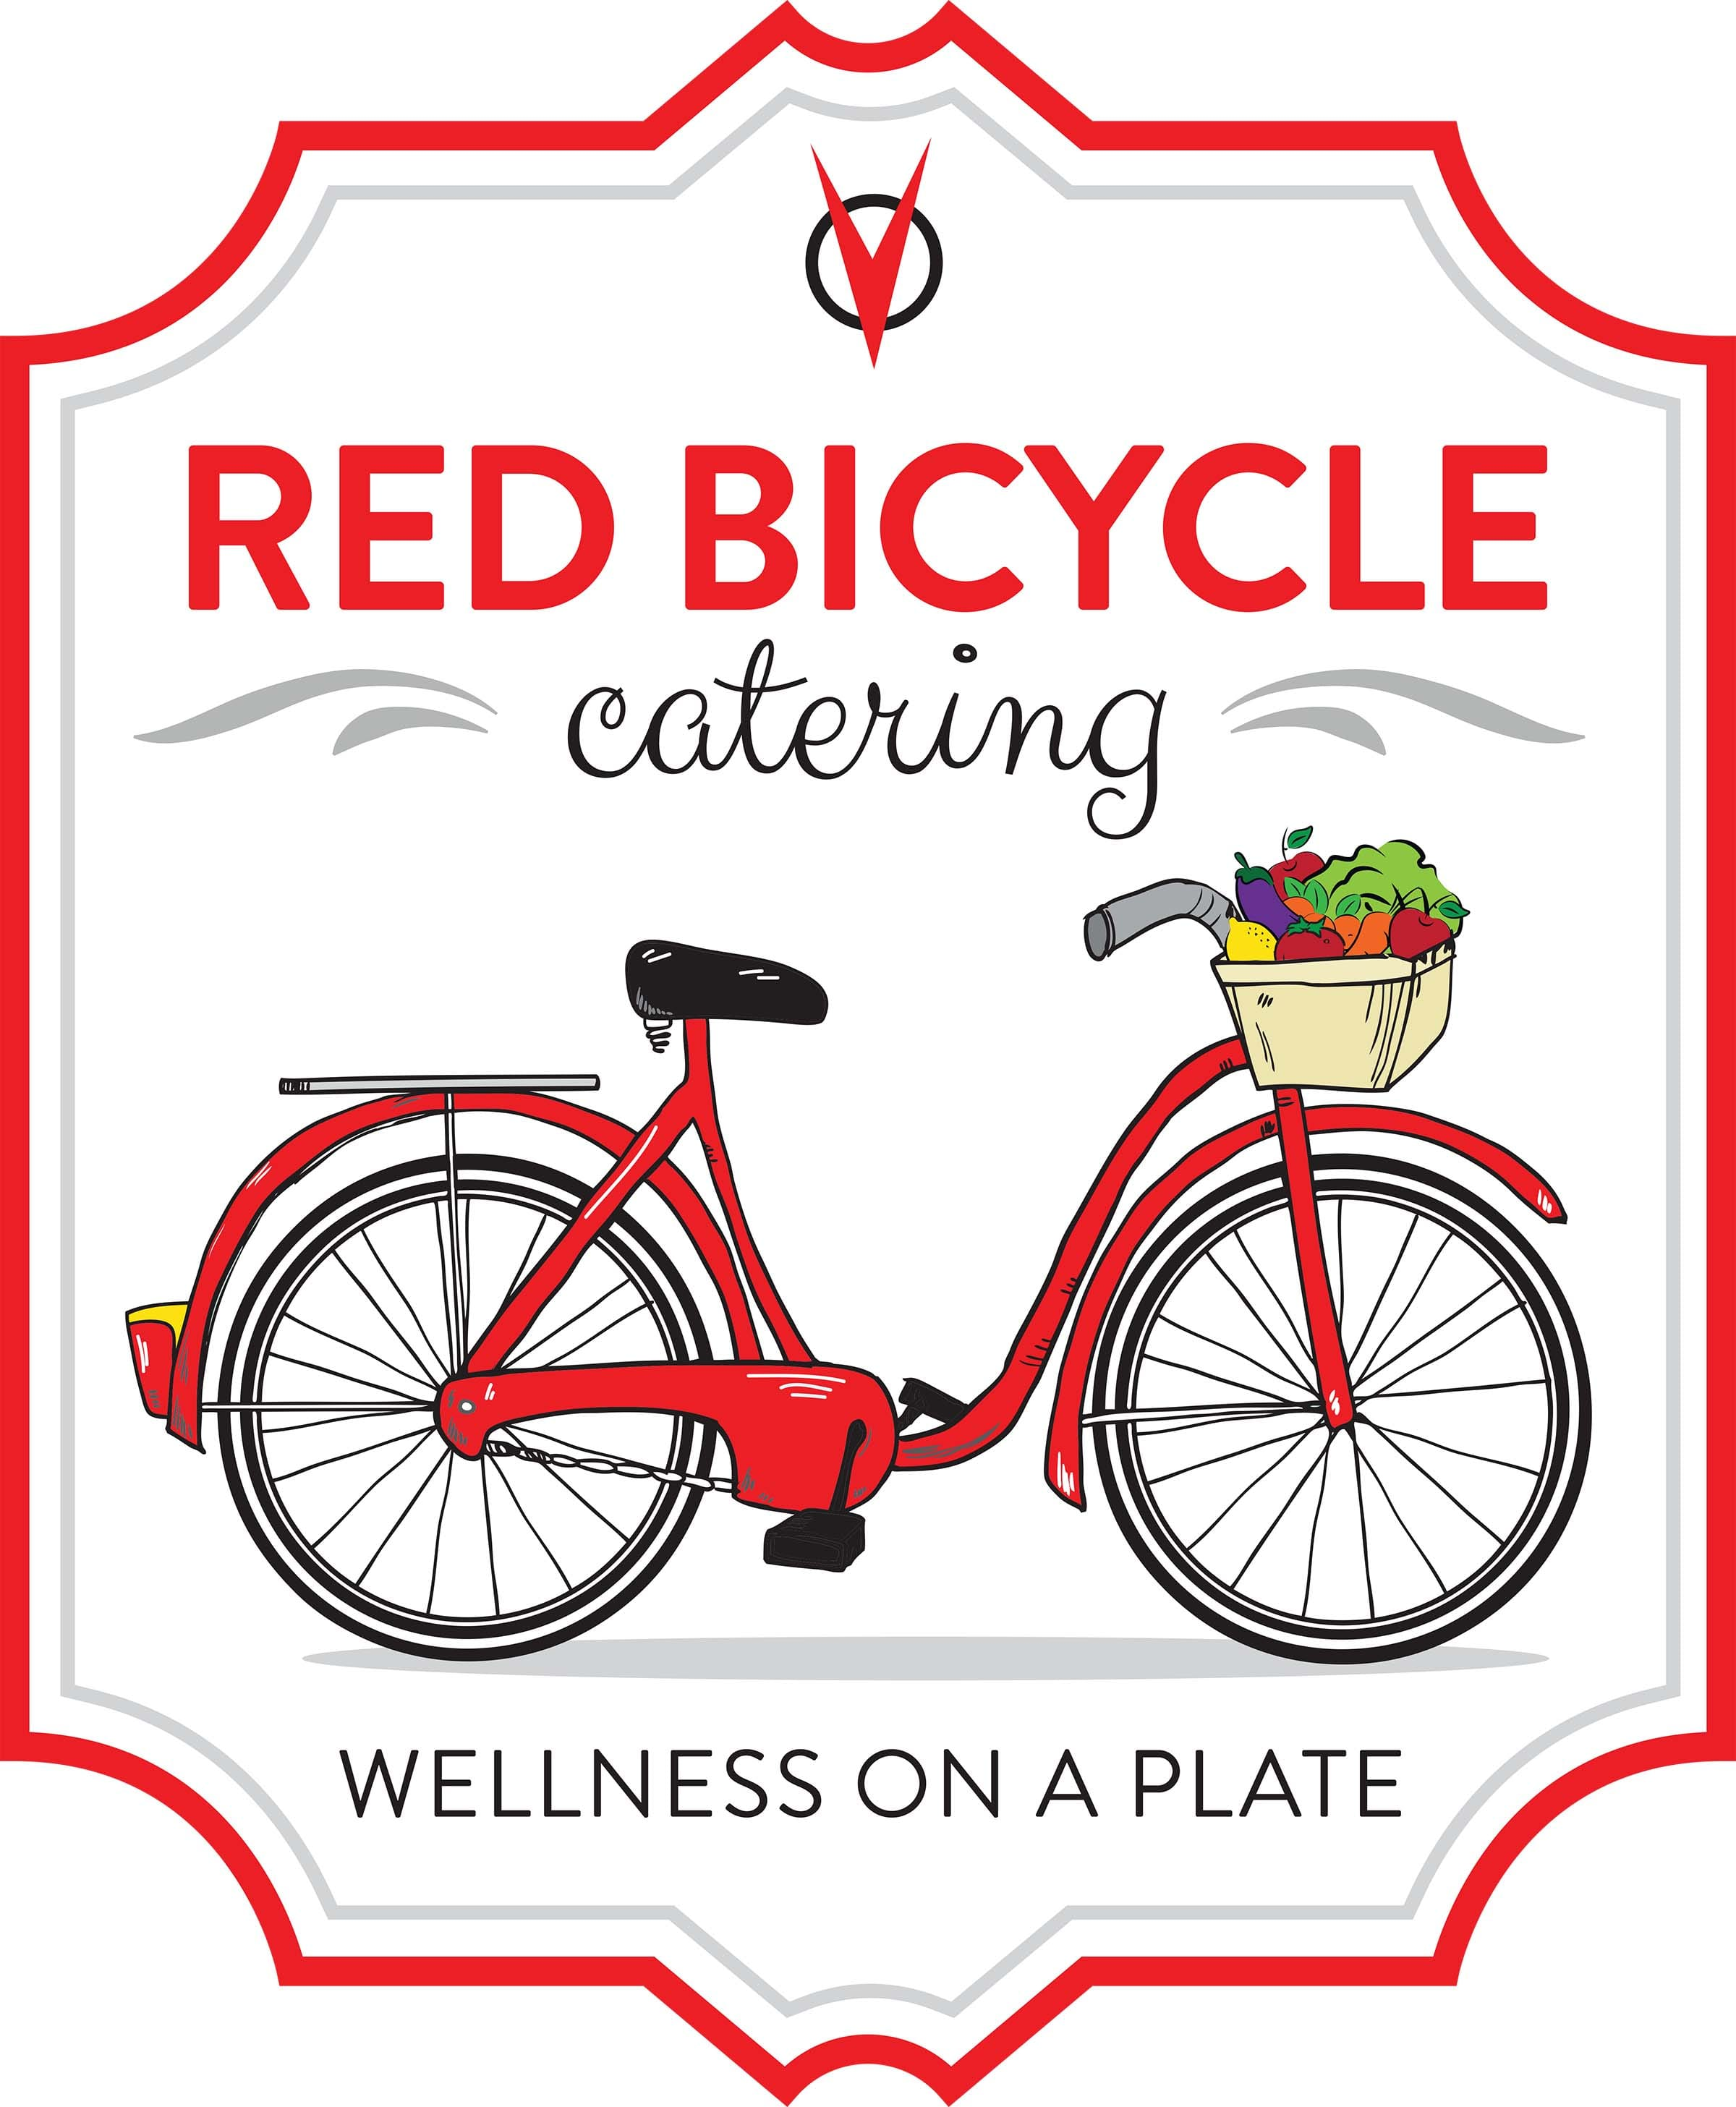 Red Bicycle Catering logo